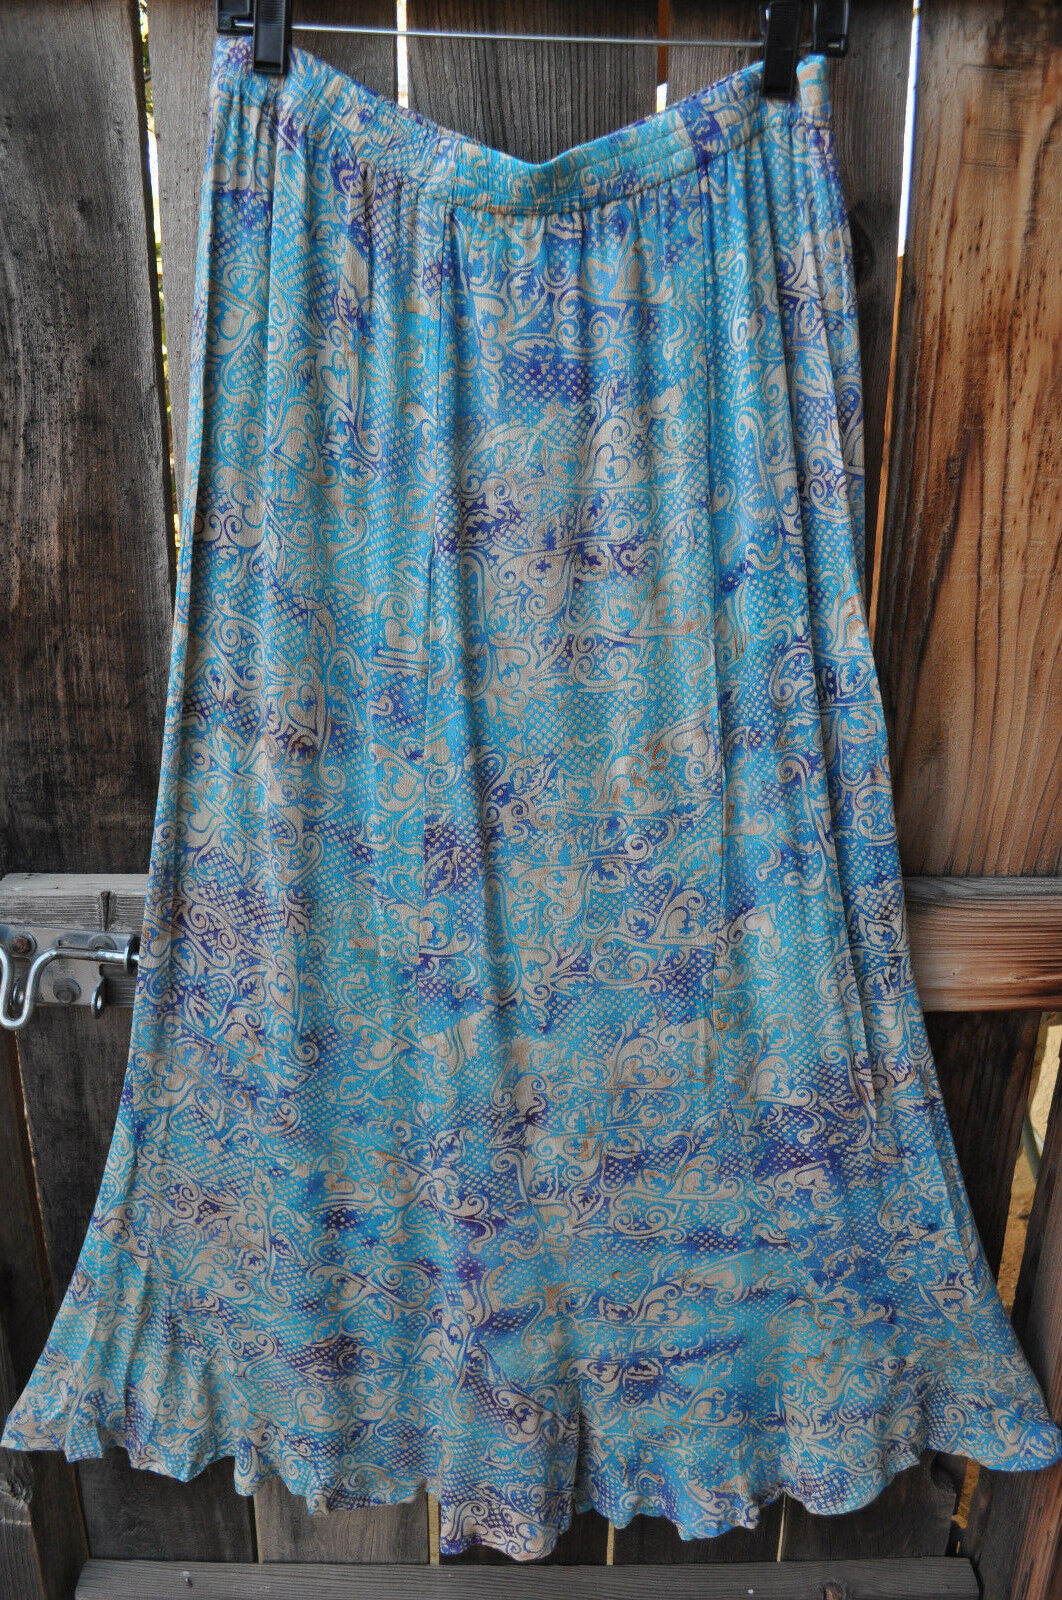 ART TO WEAR MISSION CANYON FLIRTY 5 SKIRT IN ALL NEW AZURE, ONE SIZE